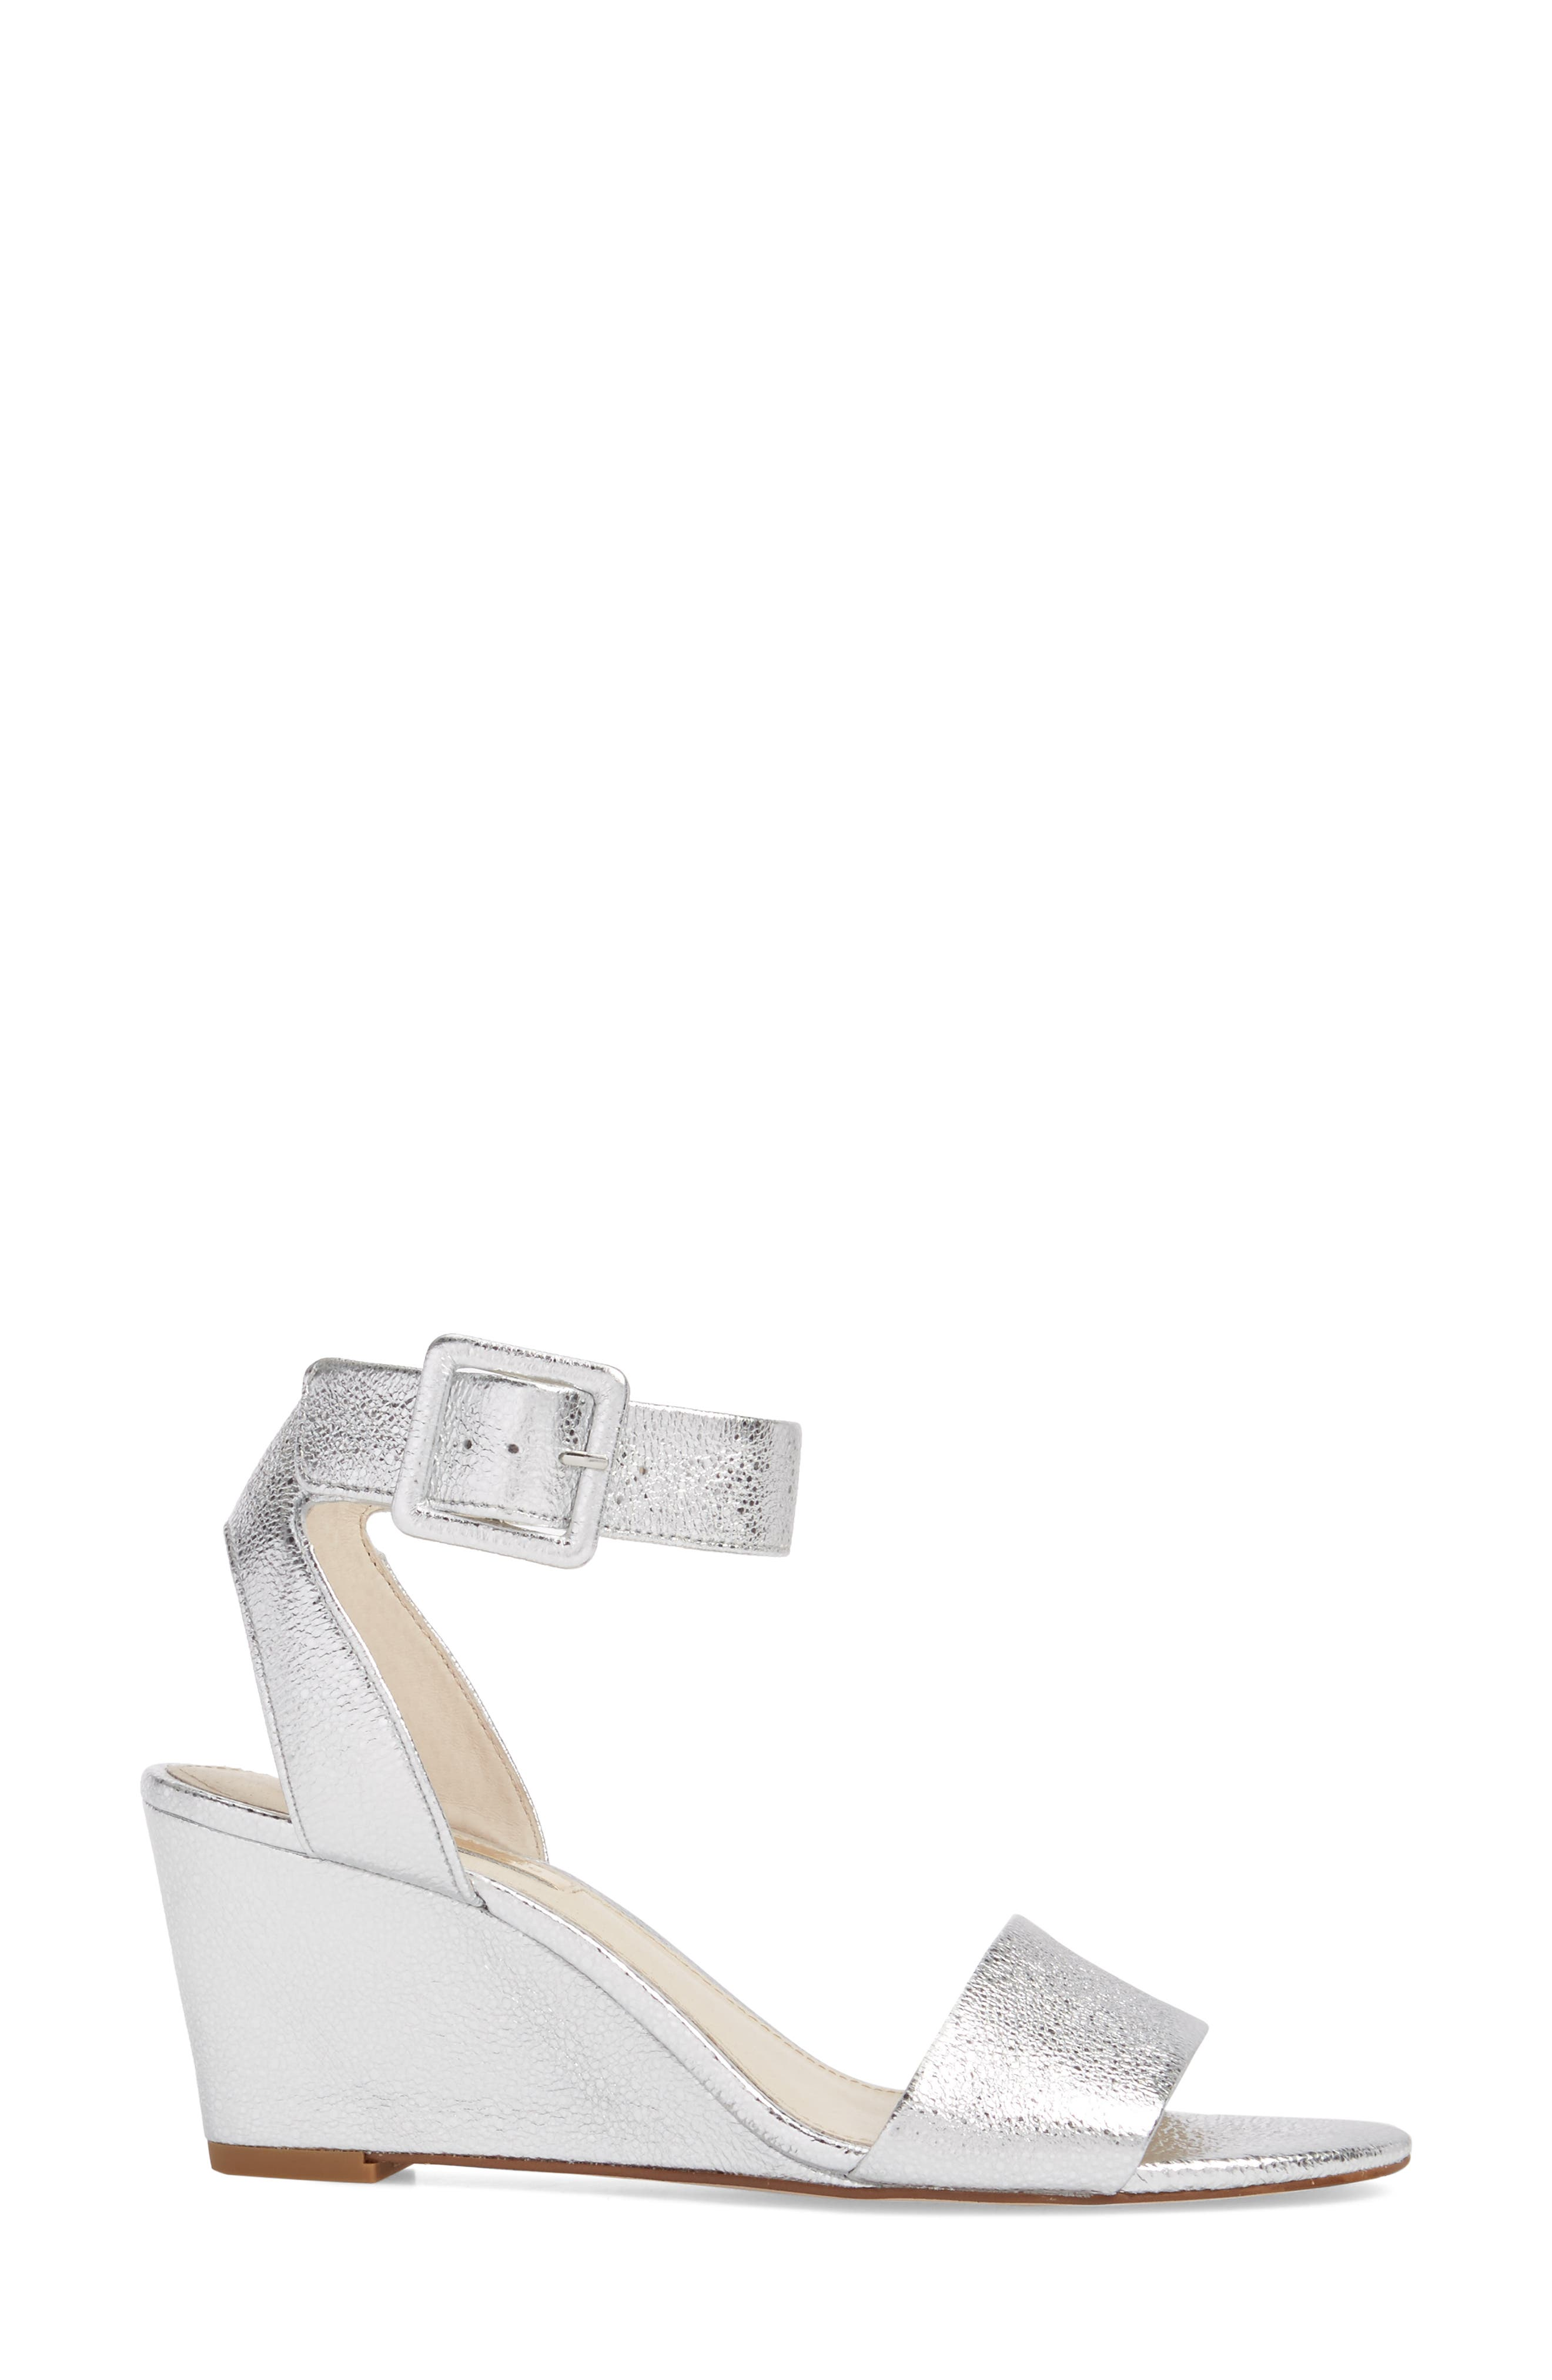 LOUISE ET CIE, Punya Wedge Sandal, Alternate thumbnail 3, color, STERLING LEATHER